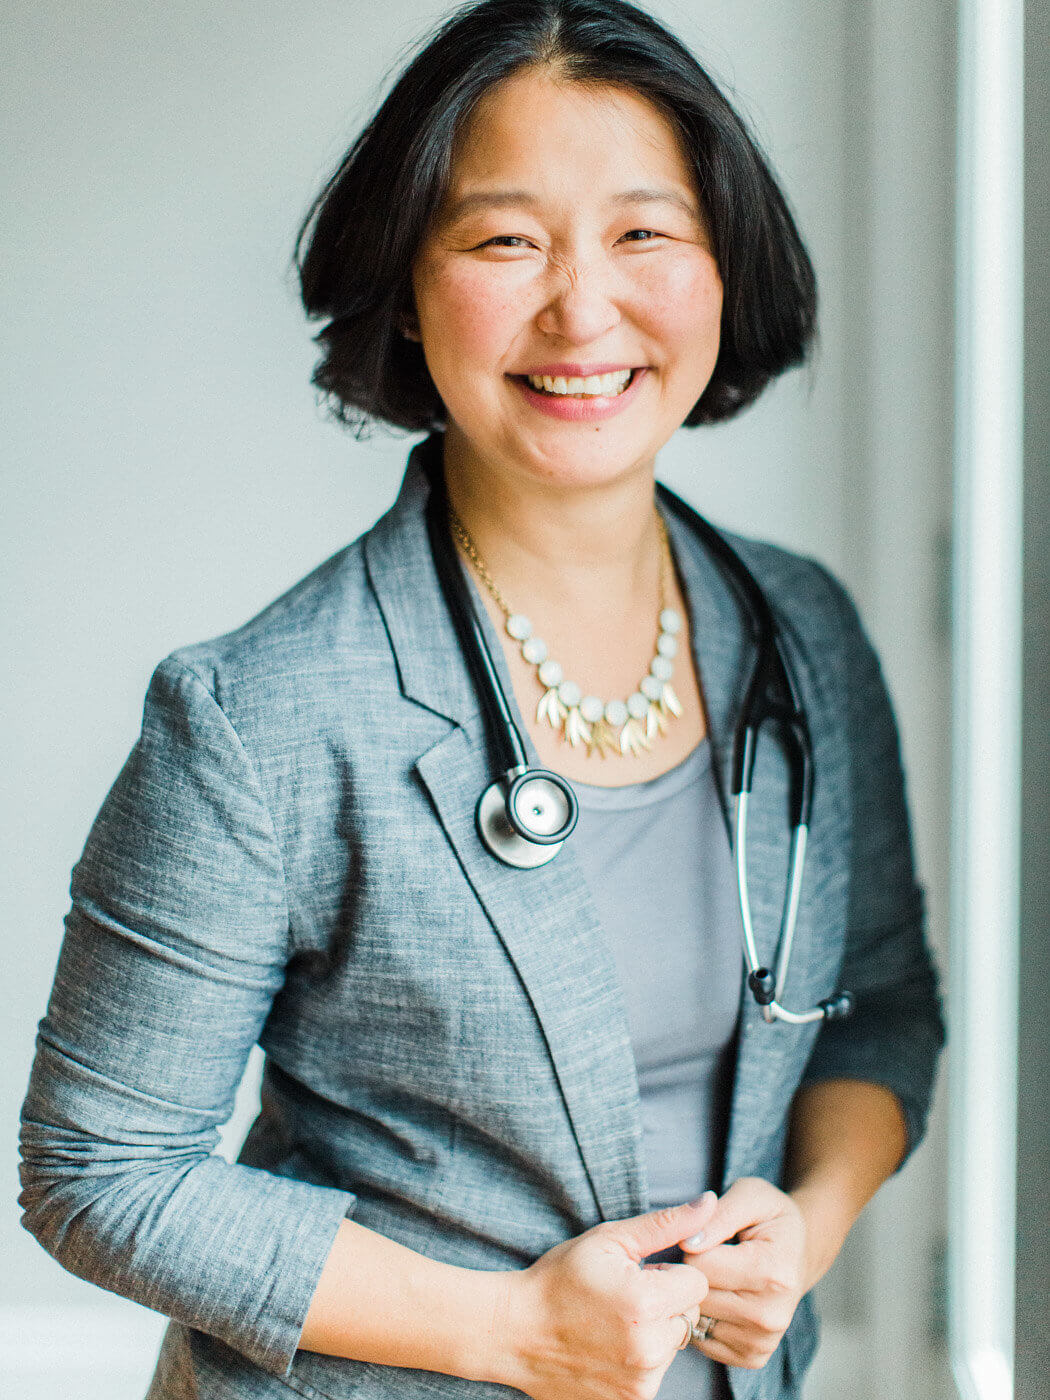 Dr. Janice Wu - Naturopath and Doula in Stouffville